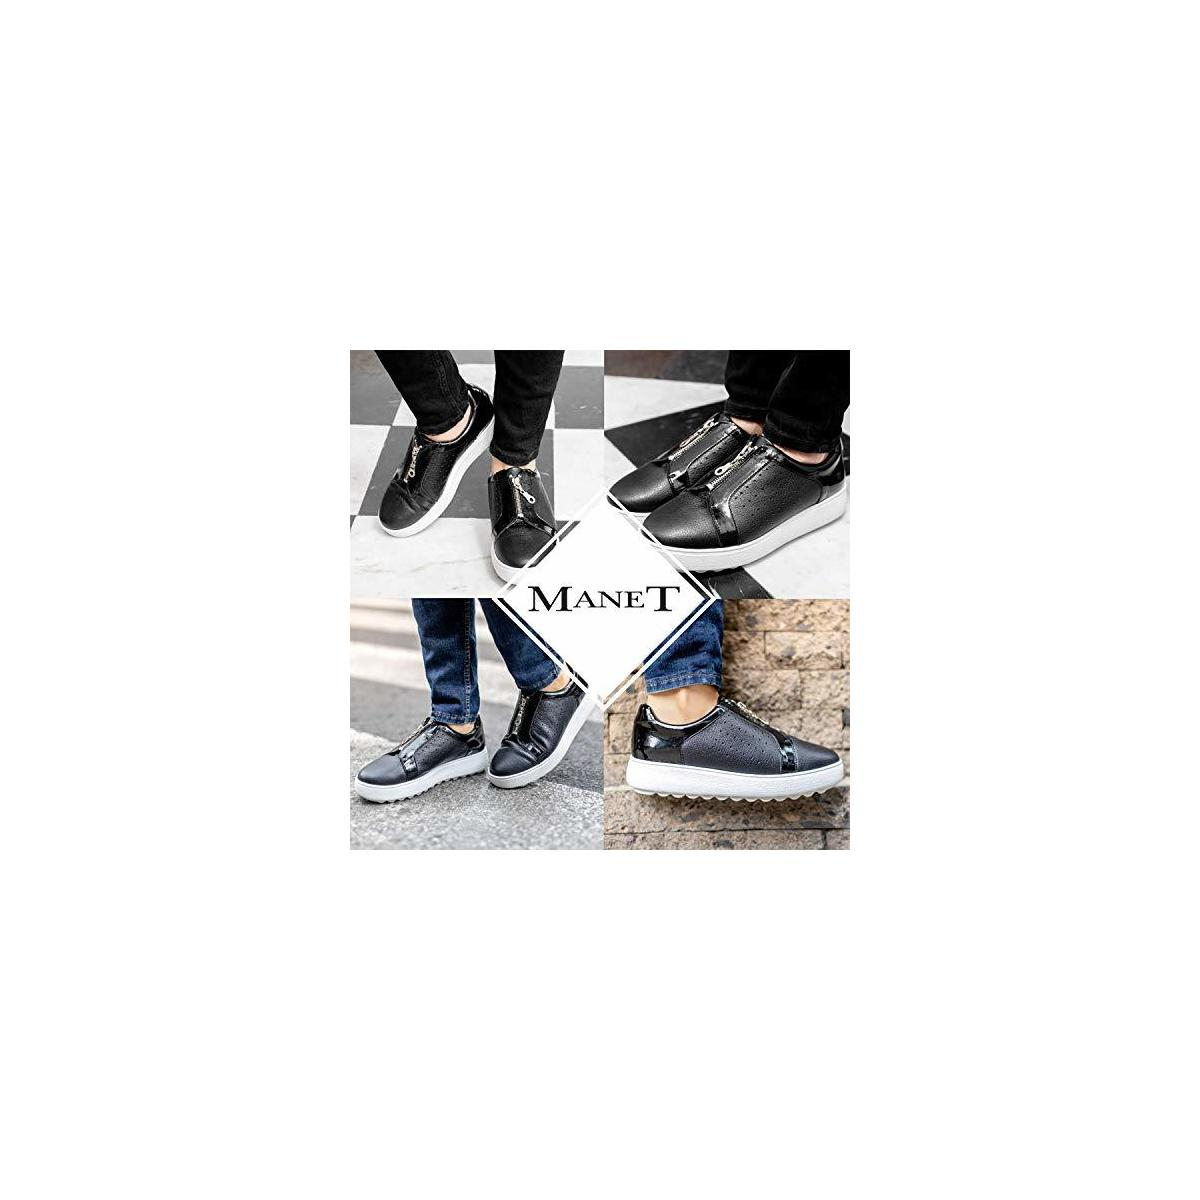 MANET Slip On Leather Sneakers for Women - Womens Fashion Zip Up Perforated Casual Comfort Walking Shoes - Crisantemo